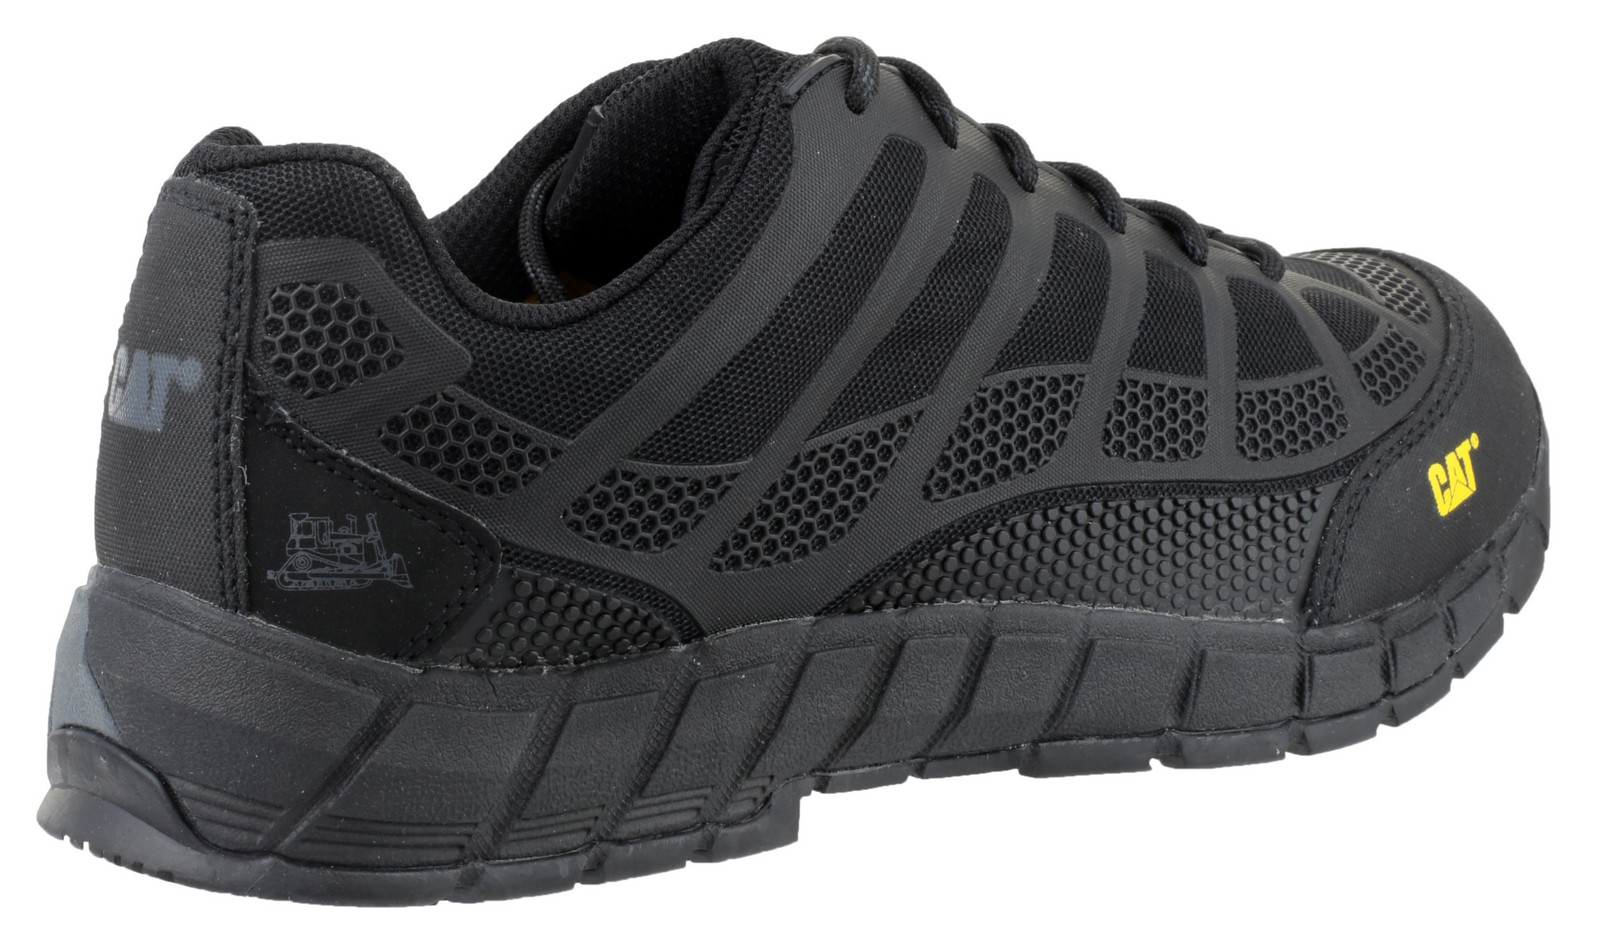 Caterpillar Streamline  Composite Toe Safety Shoe